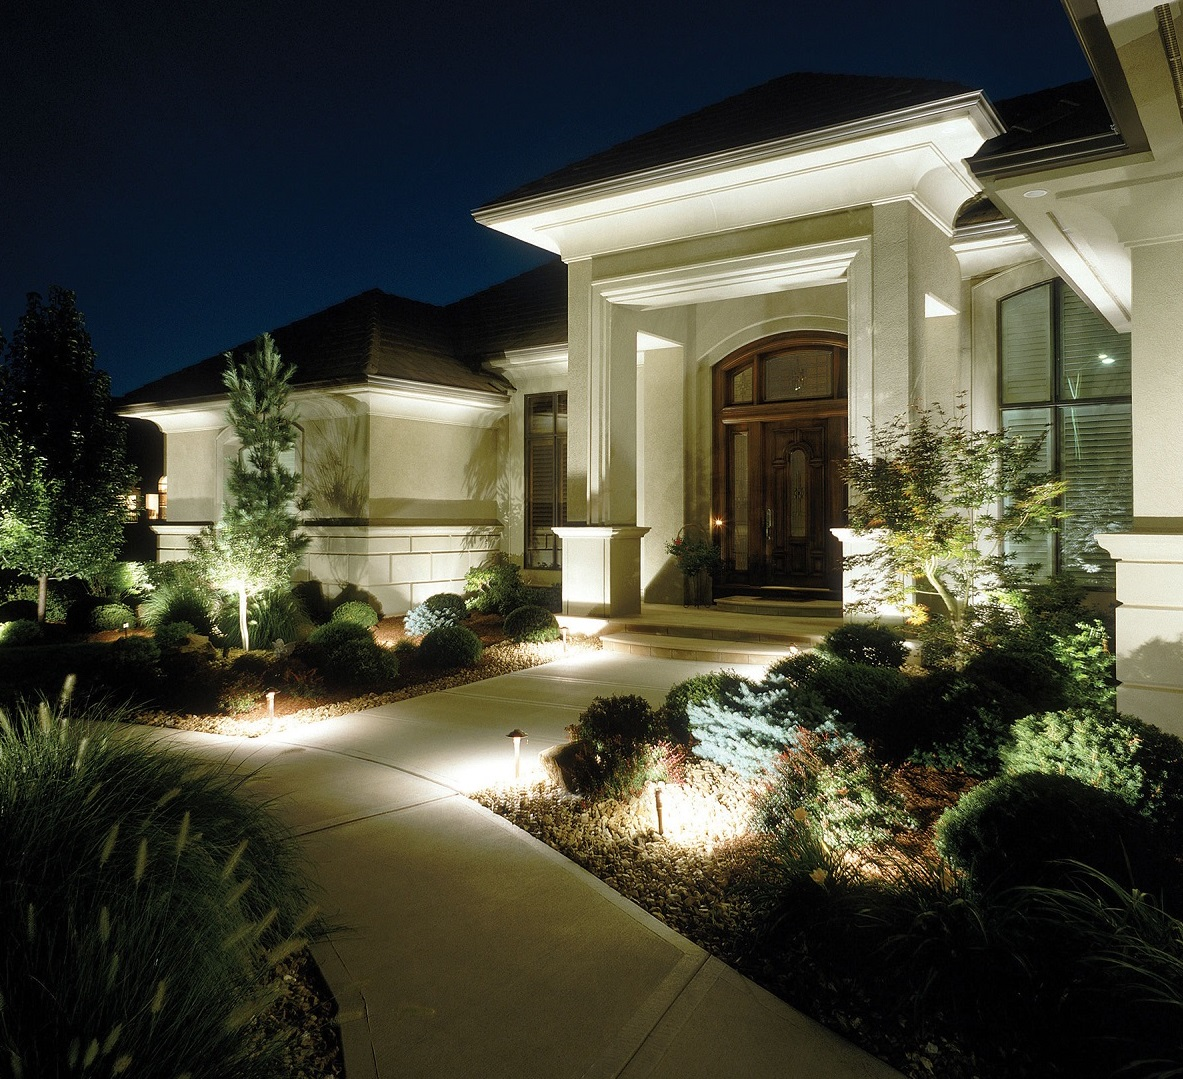 Blog outdoor lighting perspectives linger longer clearwater outdoor lighting is the perfect way to extend the hours you can linger outside our deck lighting pool surround lighting and aloadofball Choice Image